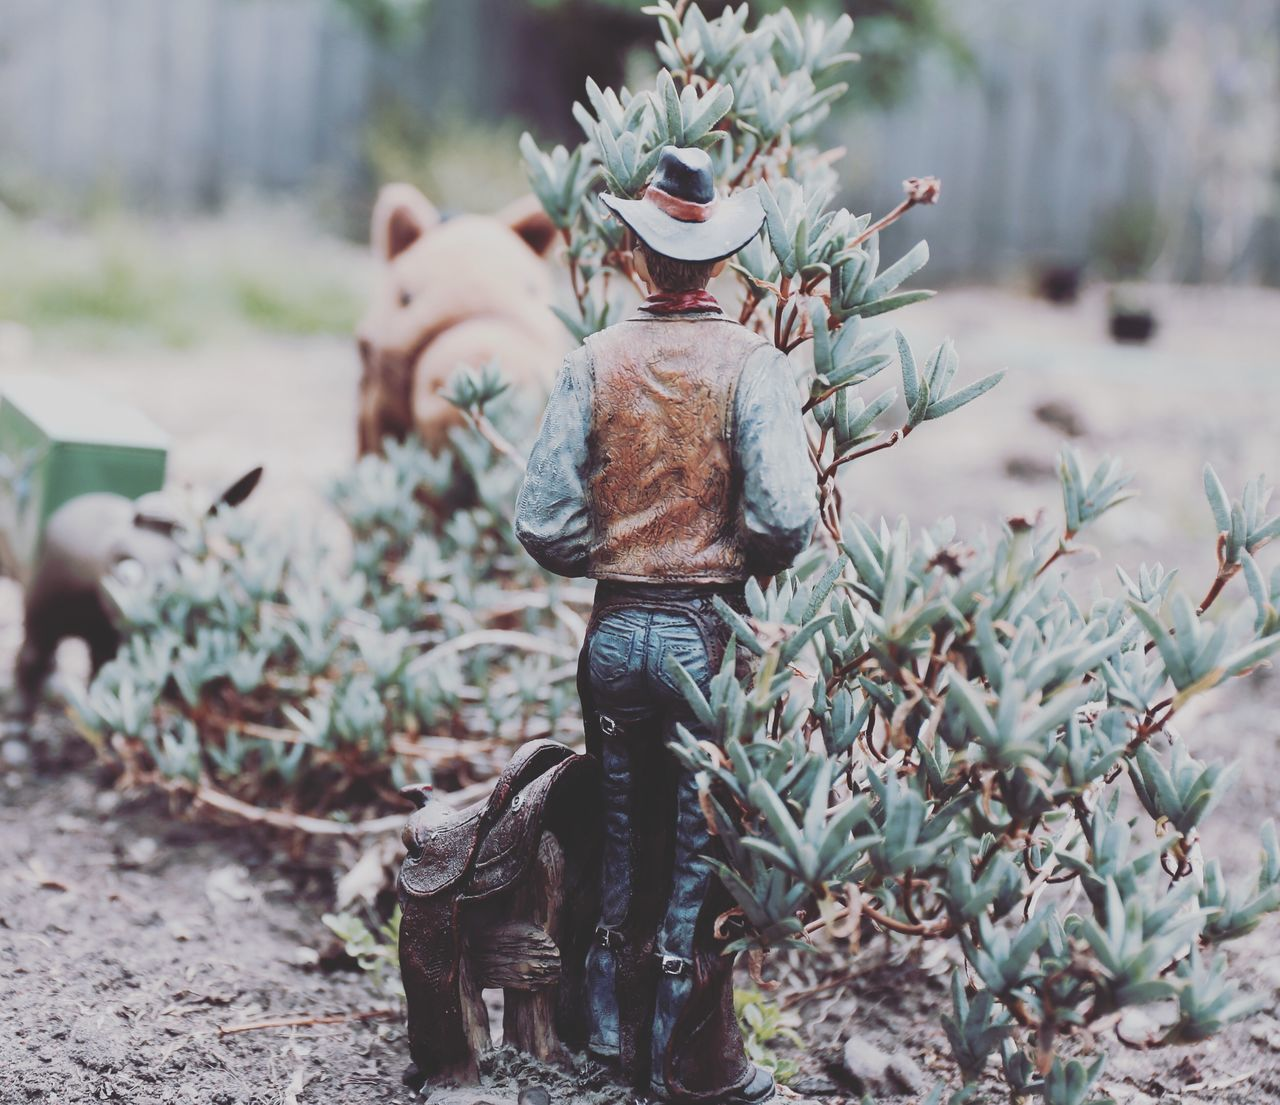 Real People Focus On Foreground One Person Day Outdoors Growth Field Nature Close-up Camouflage Clothing Muttlypictures Cowboy Man Pissing Toys Toystory 1960's Western Toy Horse Toy Donkey Color